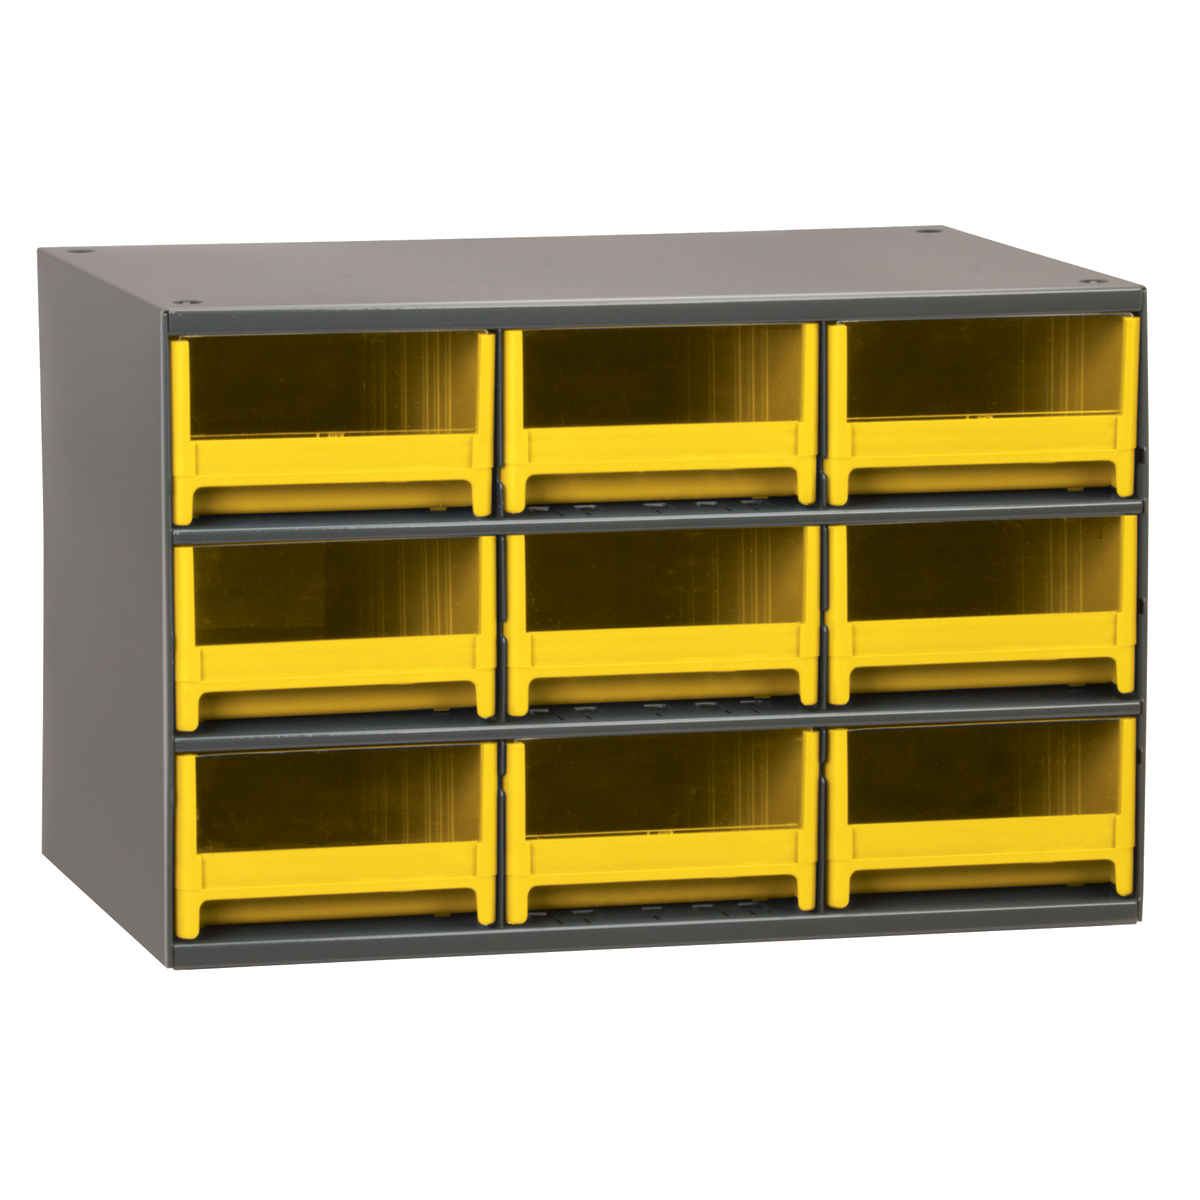 19-Series Steel Cabinet w/ 9 Drawers, Yellow (19909YEL).  This item sold in carton quantities of 1.